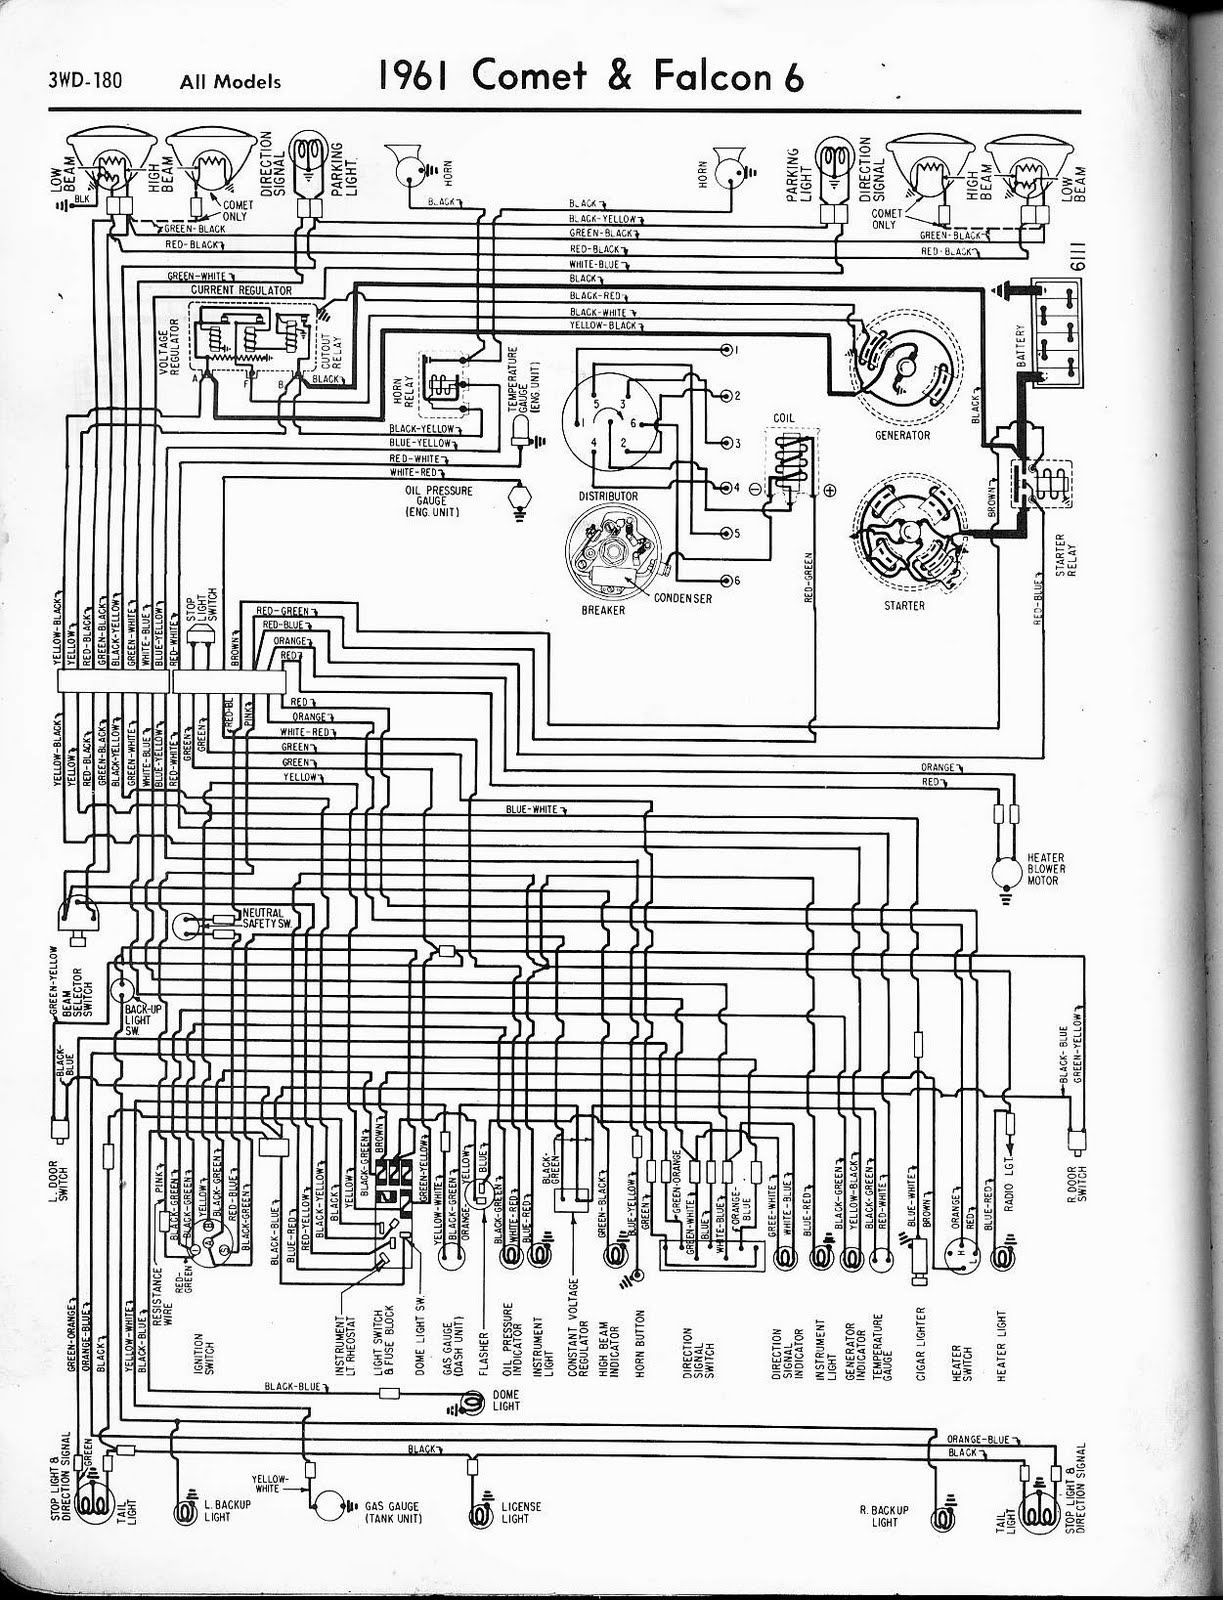 schematic diagram wiring diagram of 1961 ford falcon rh cschema blogspot com 1961 ford falcon wiring diagram 1961 ford truck wiring diagram